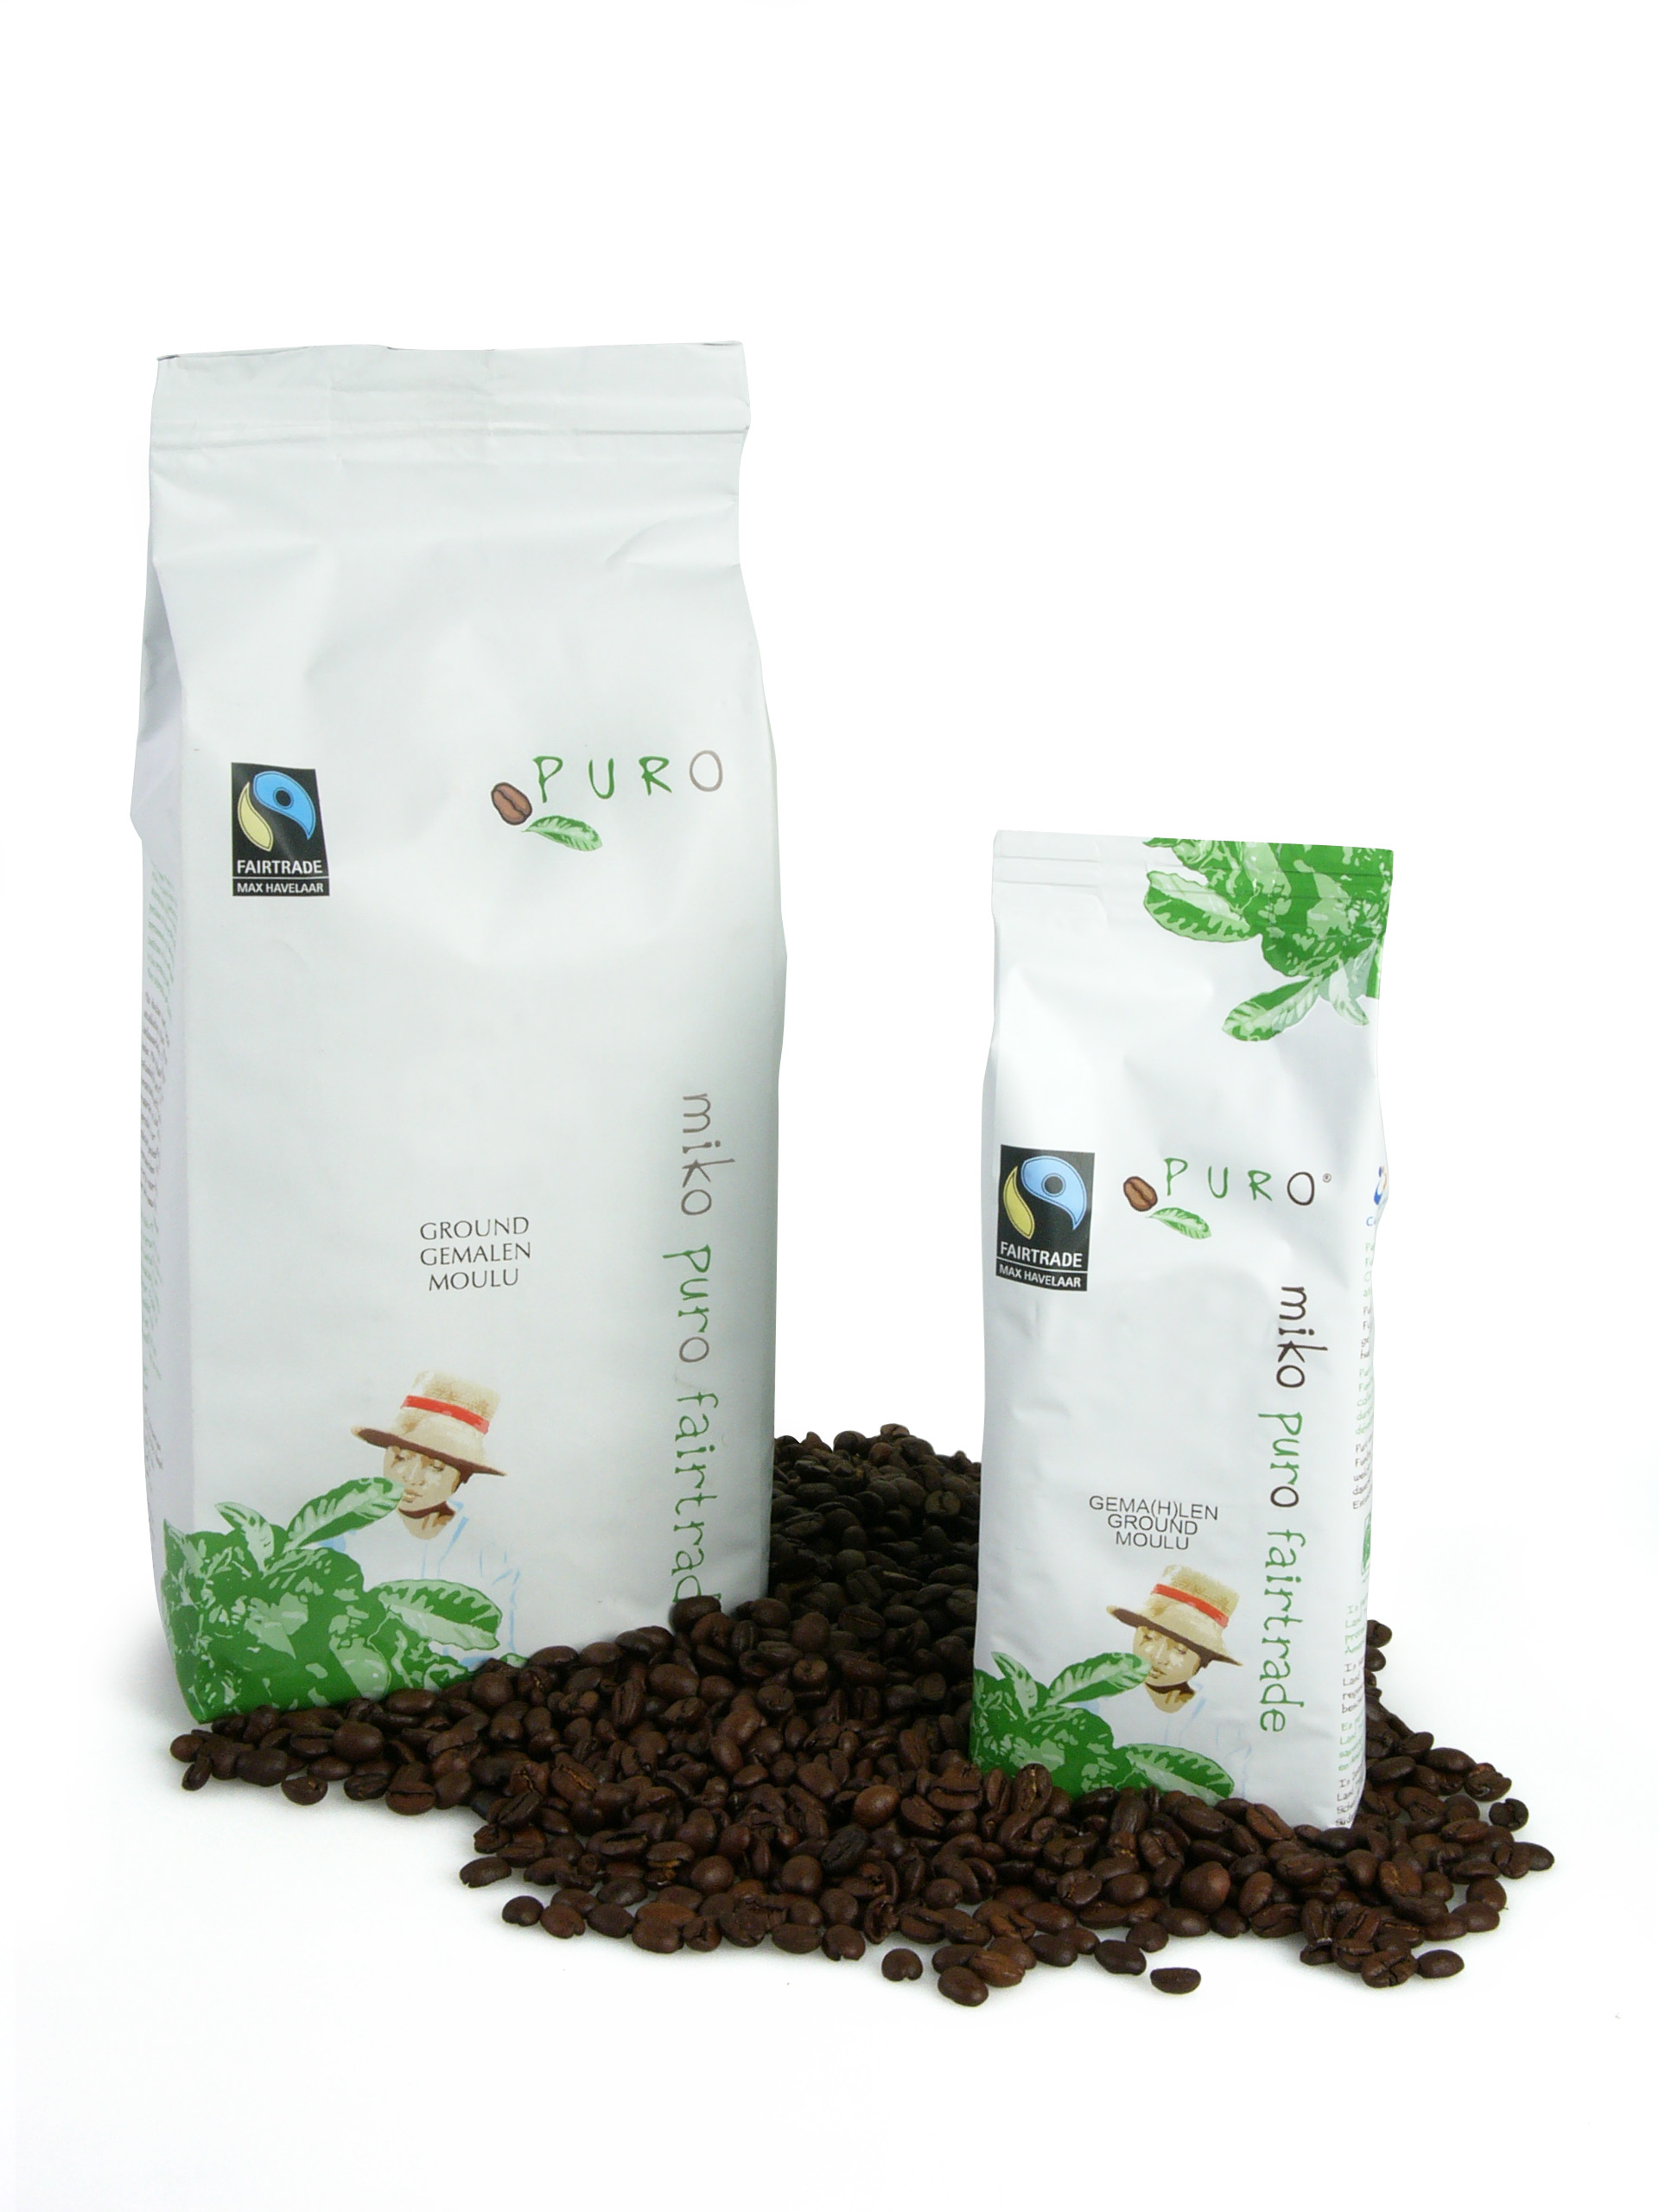 Organic coffee review